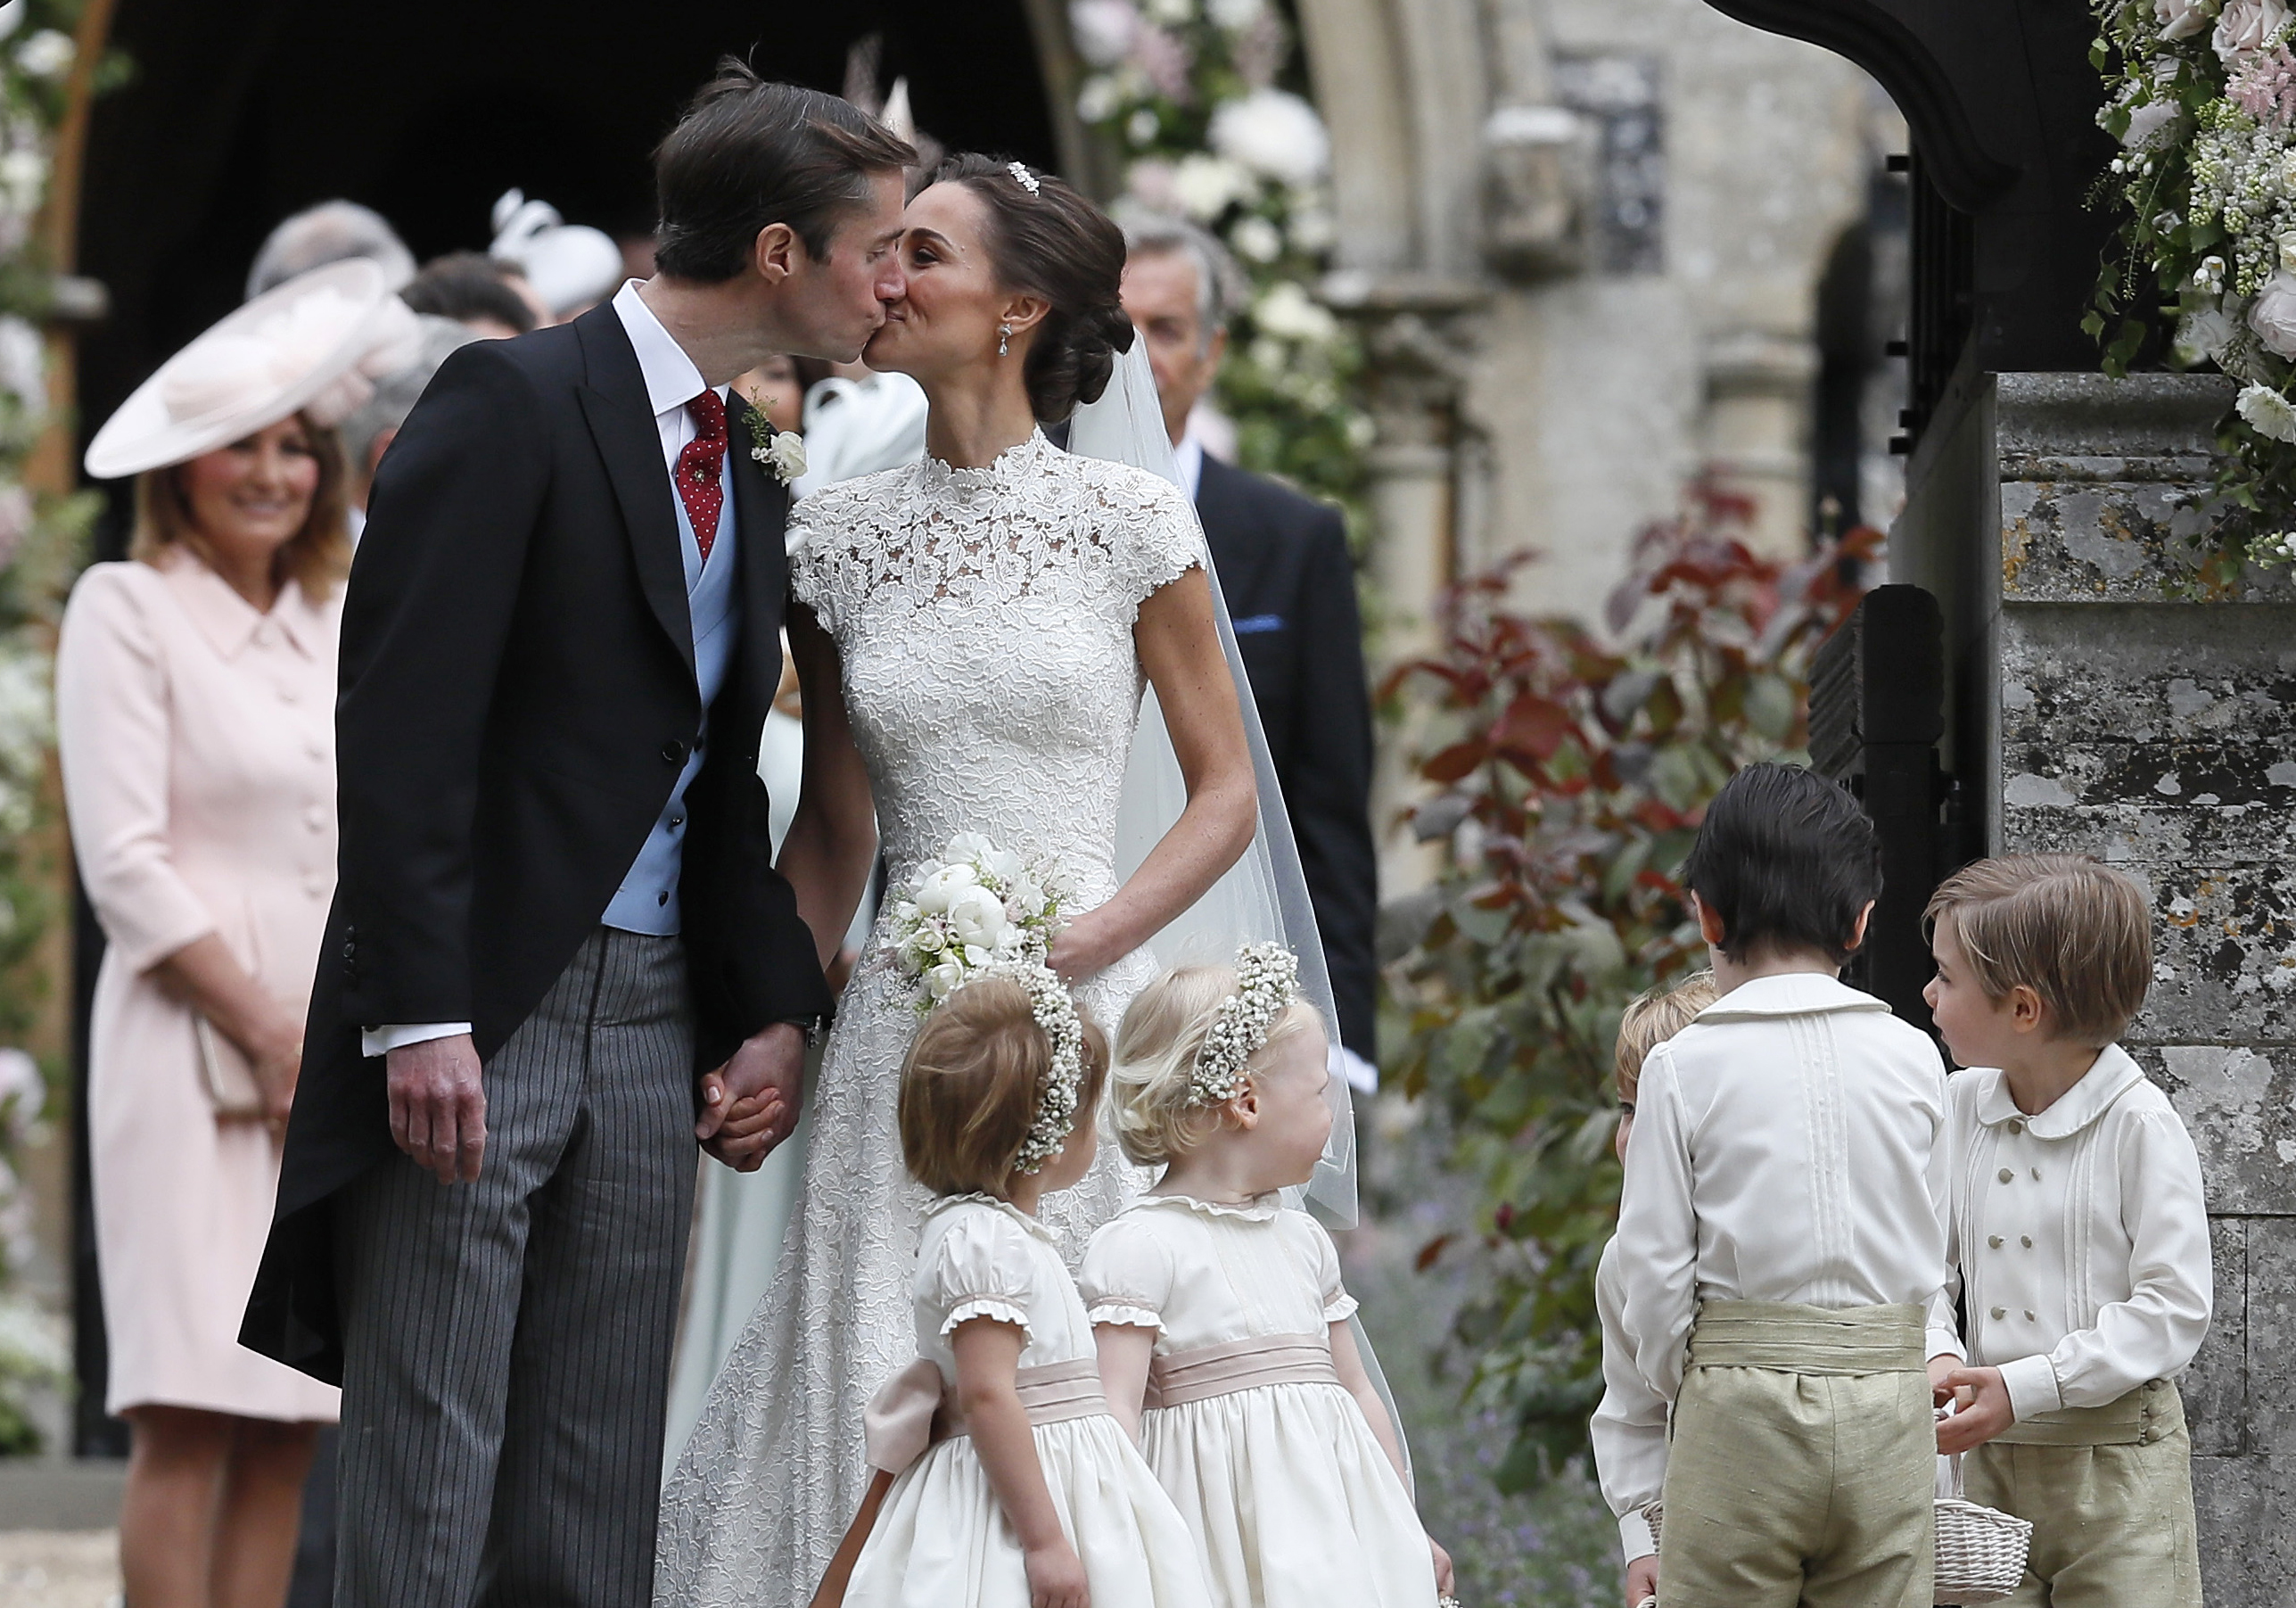 Pippa Middleton and James Matthews kiss after their wedding at St Mark's Church on May 20, 2017 in Englefield, England.